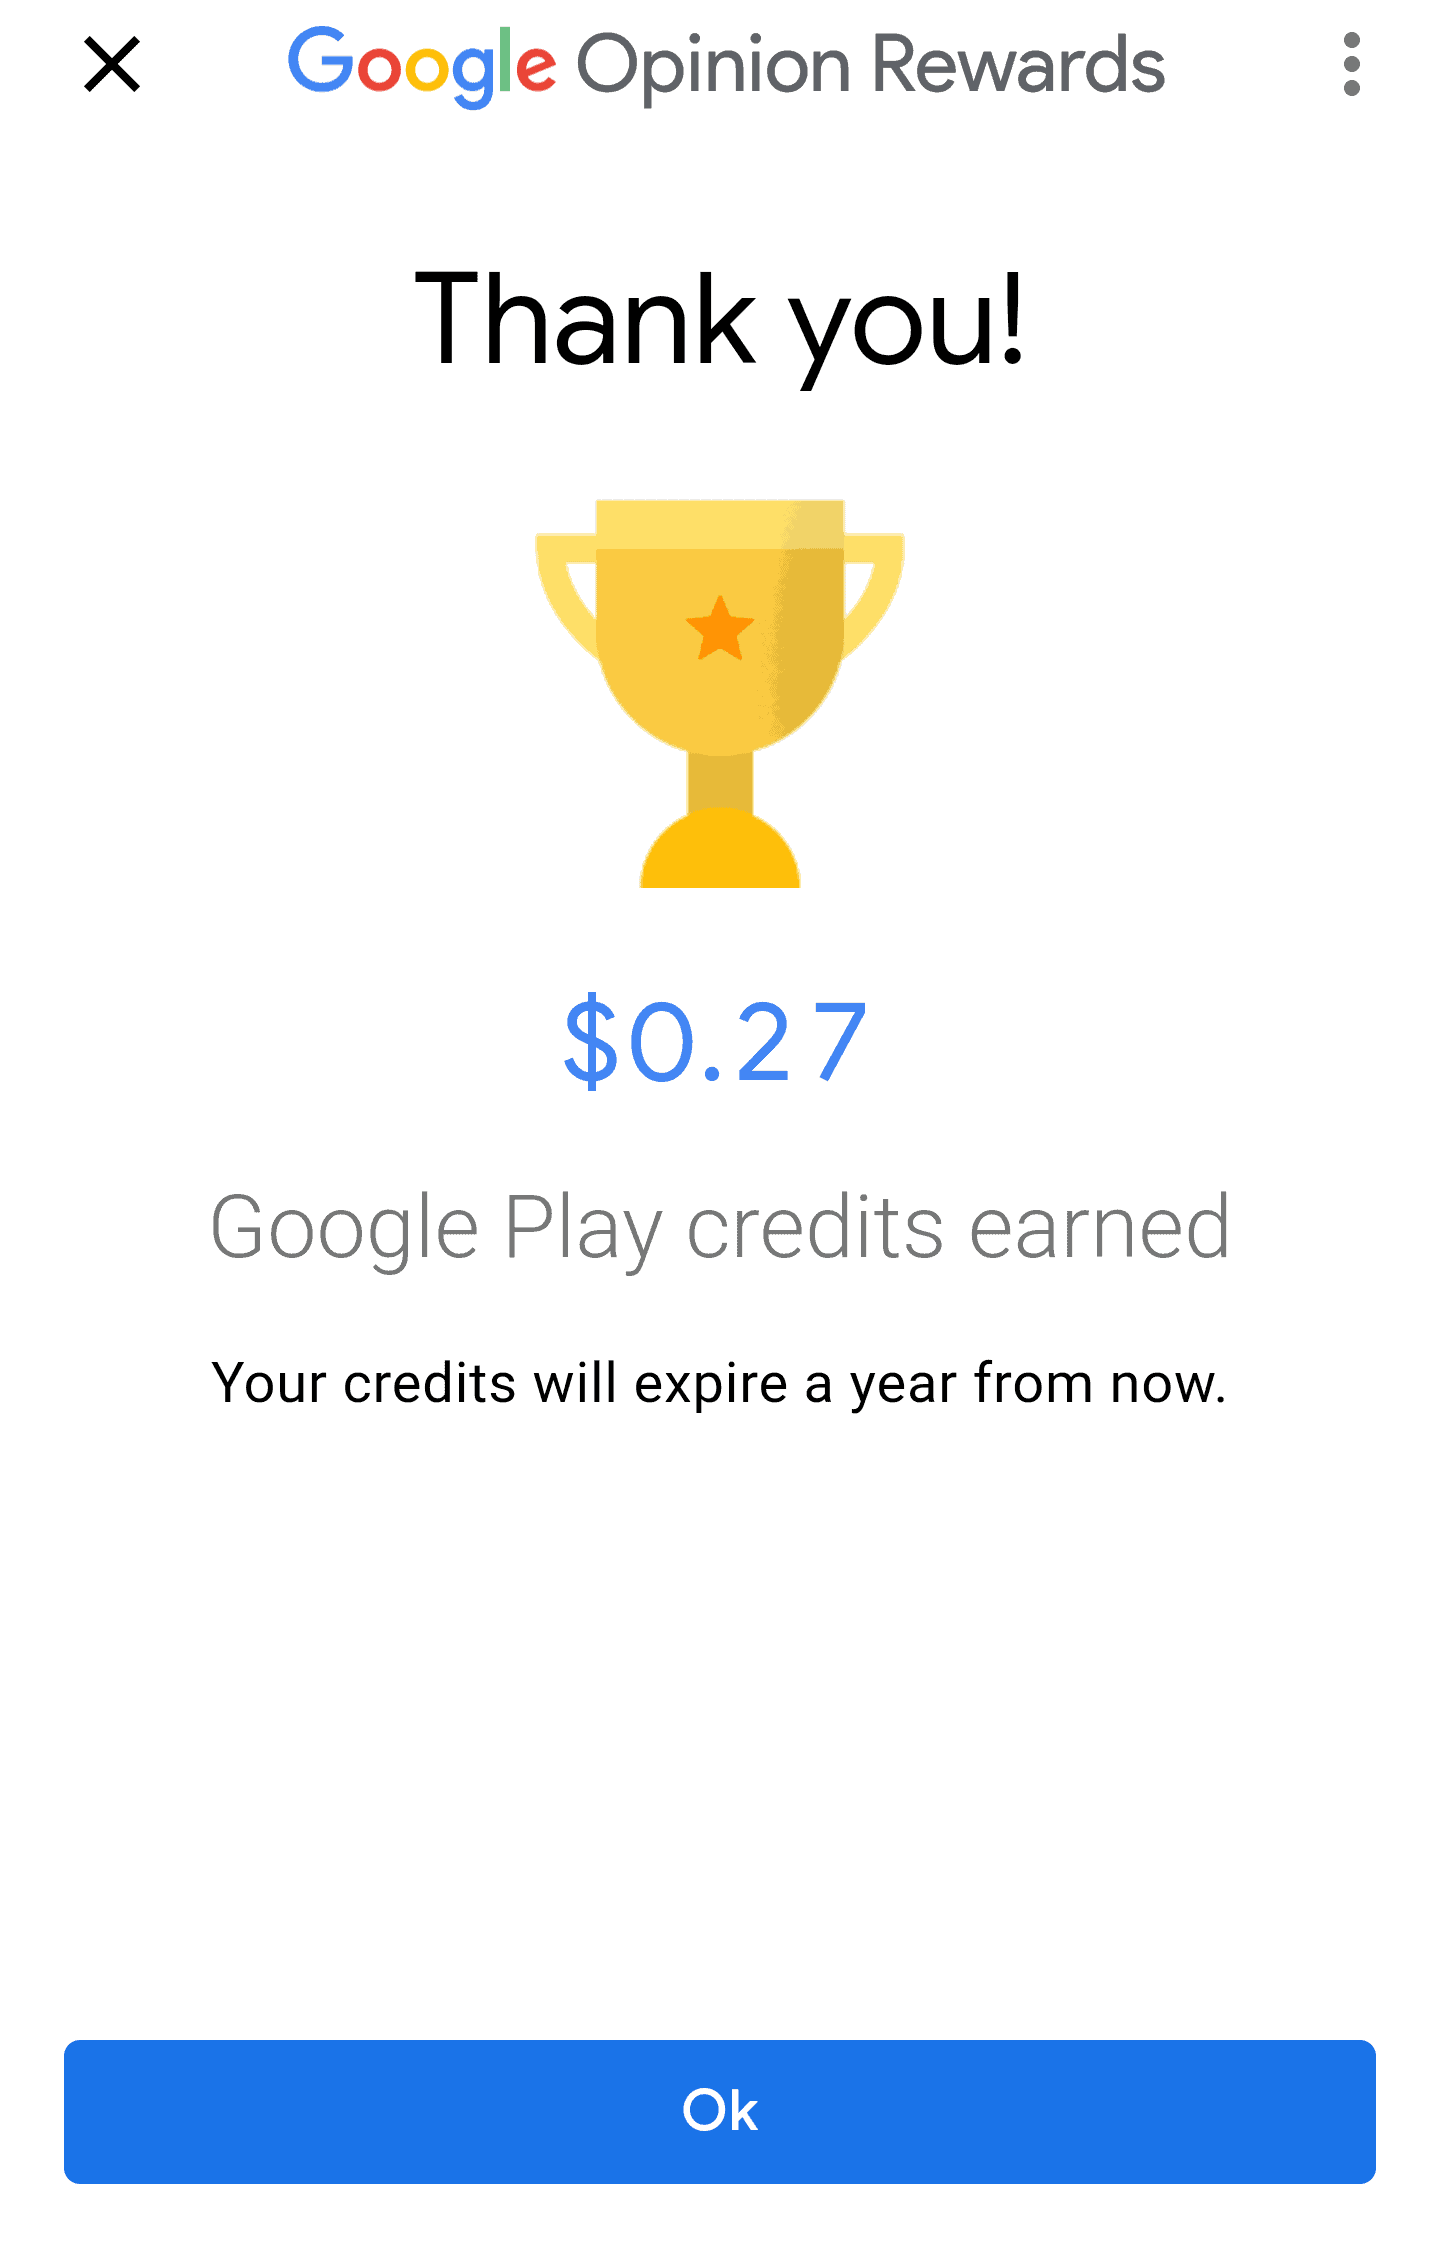 I earned 0.27 (USD) Google Play funds from completing a Google Opinion Rewards survey.